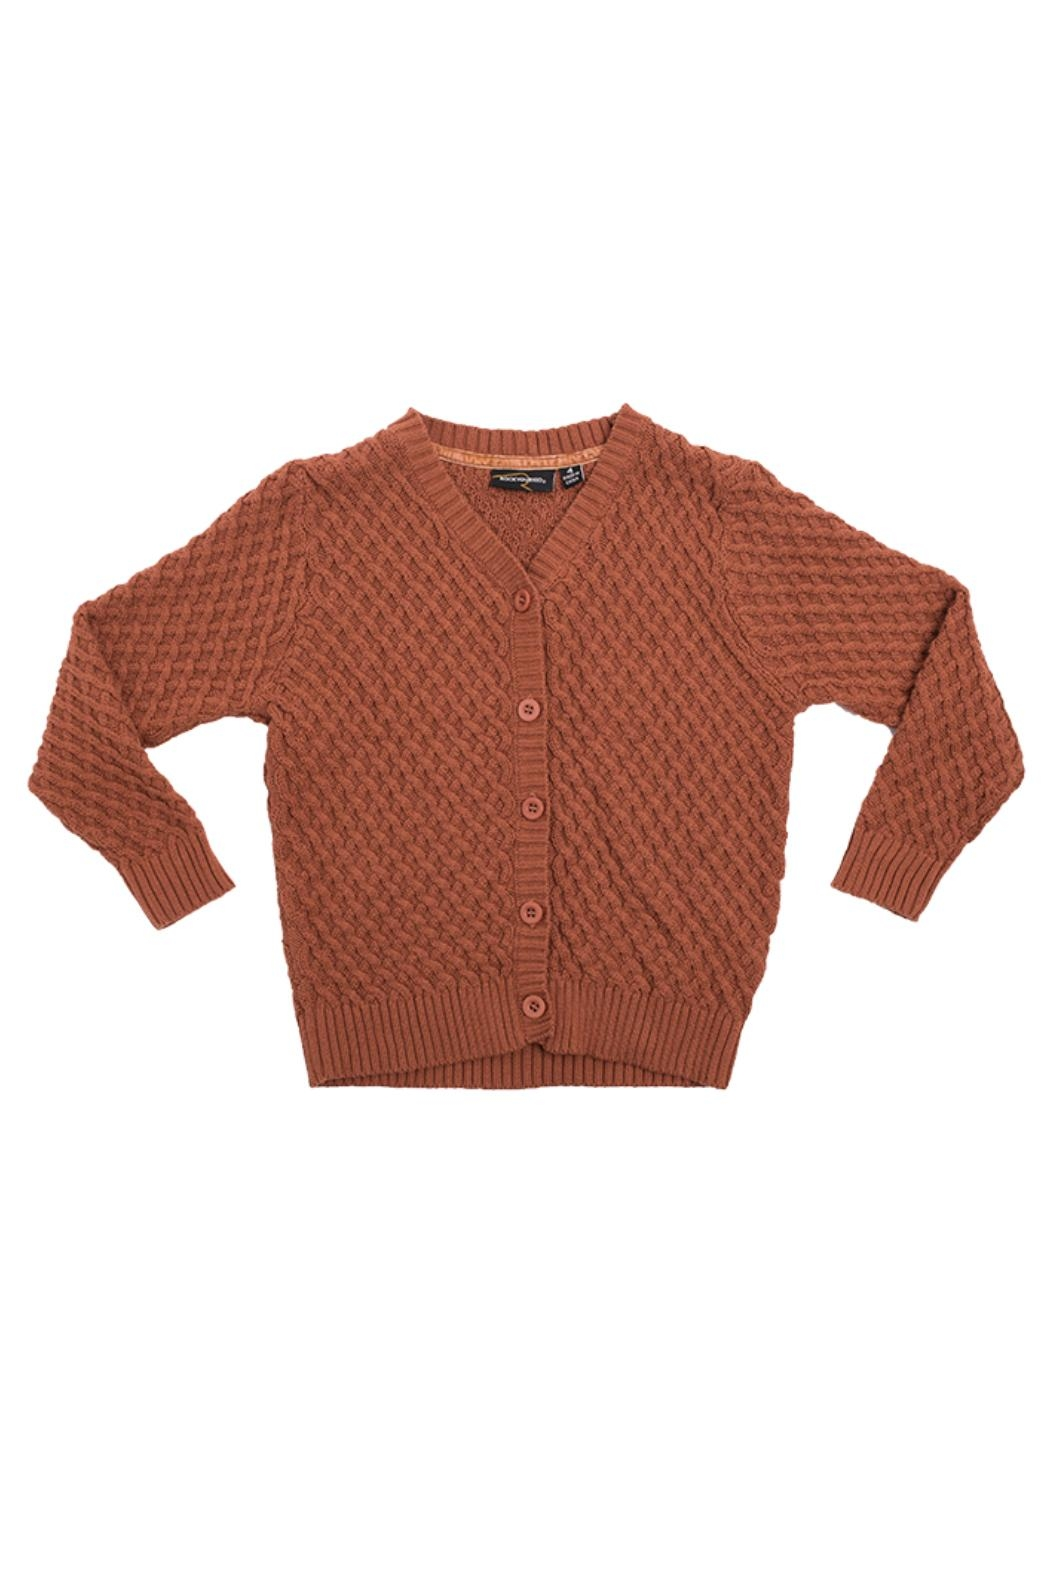 Rock Your Baby Vintage Brown Cardigan - Main Image